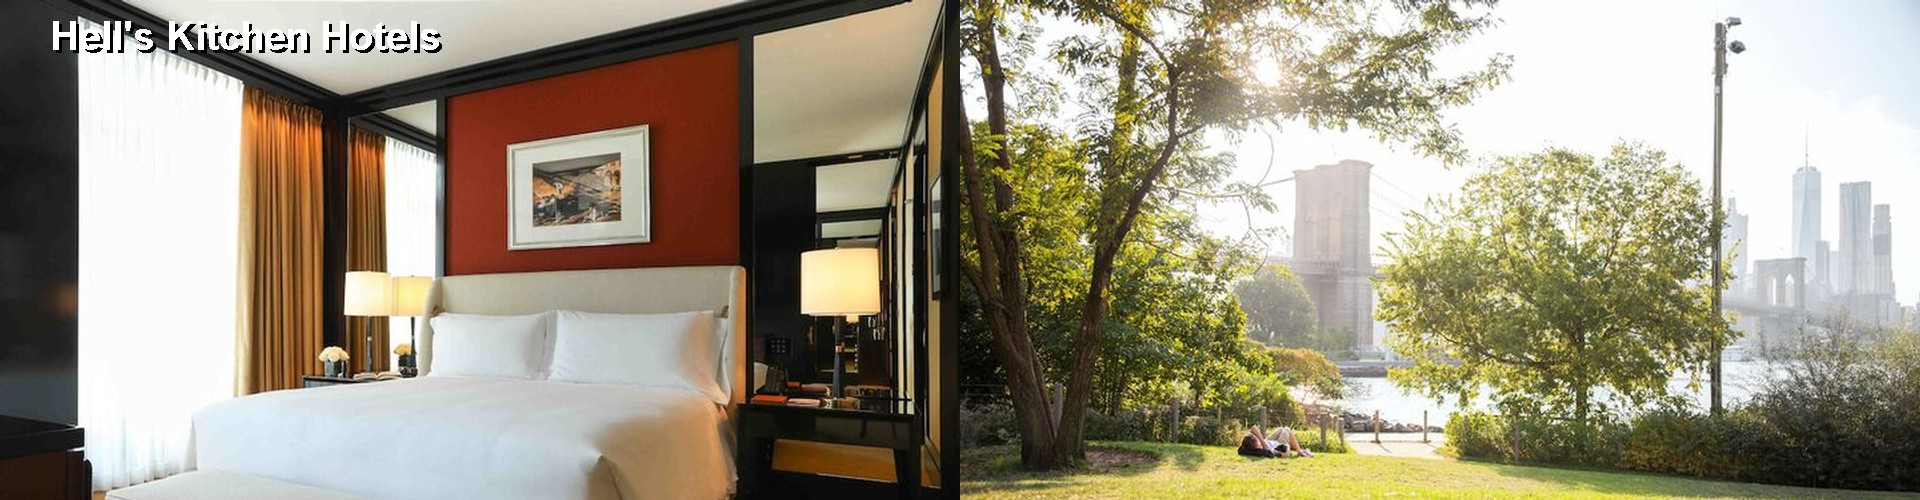 5 Best Hotels near Hell's Kitchen